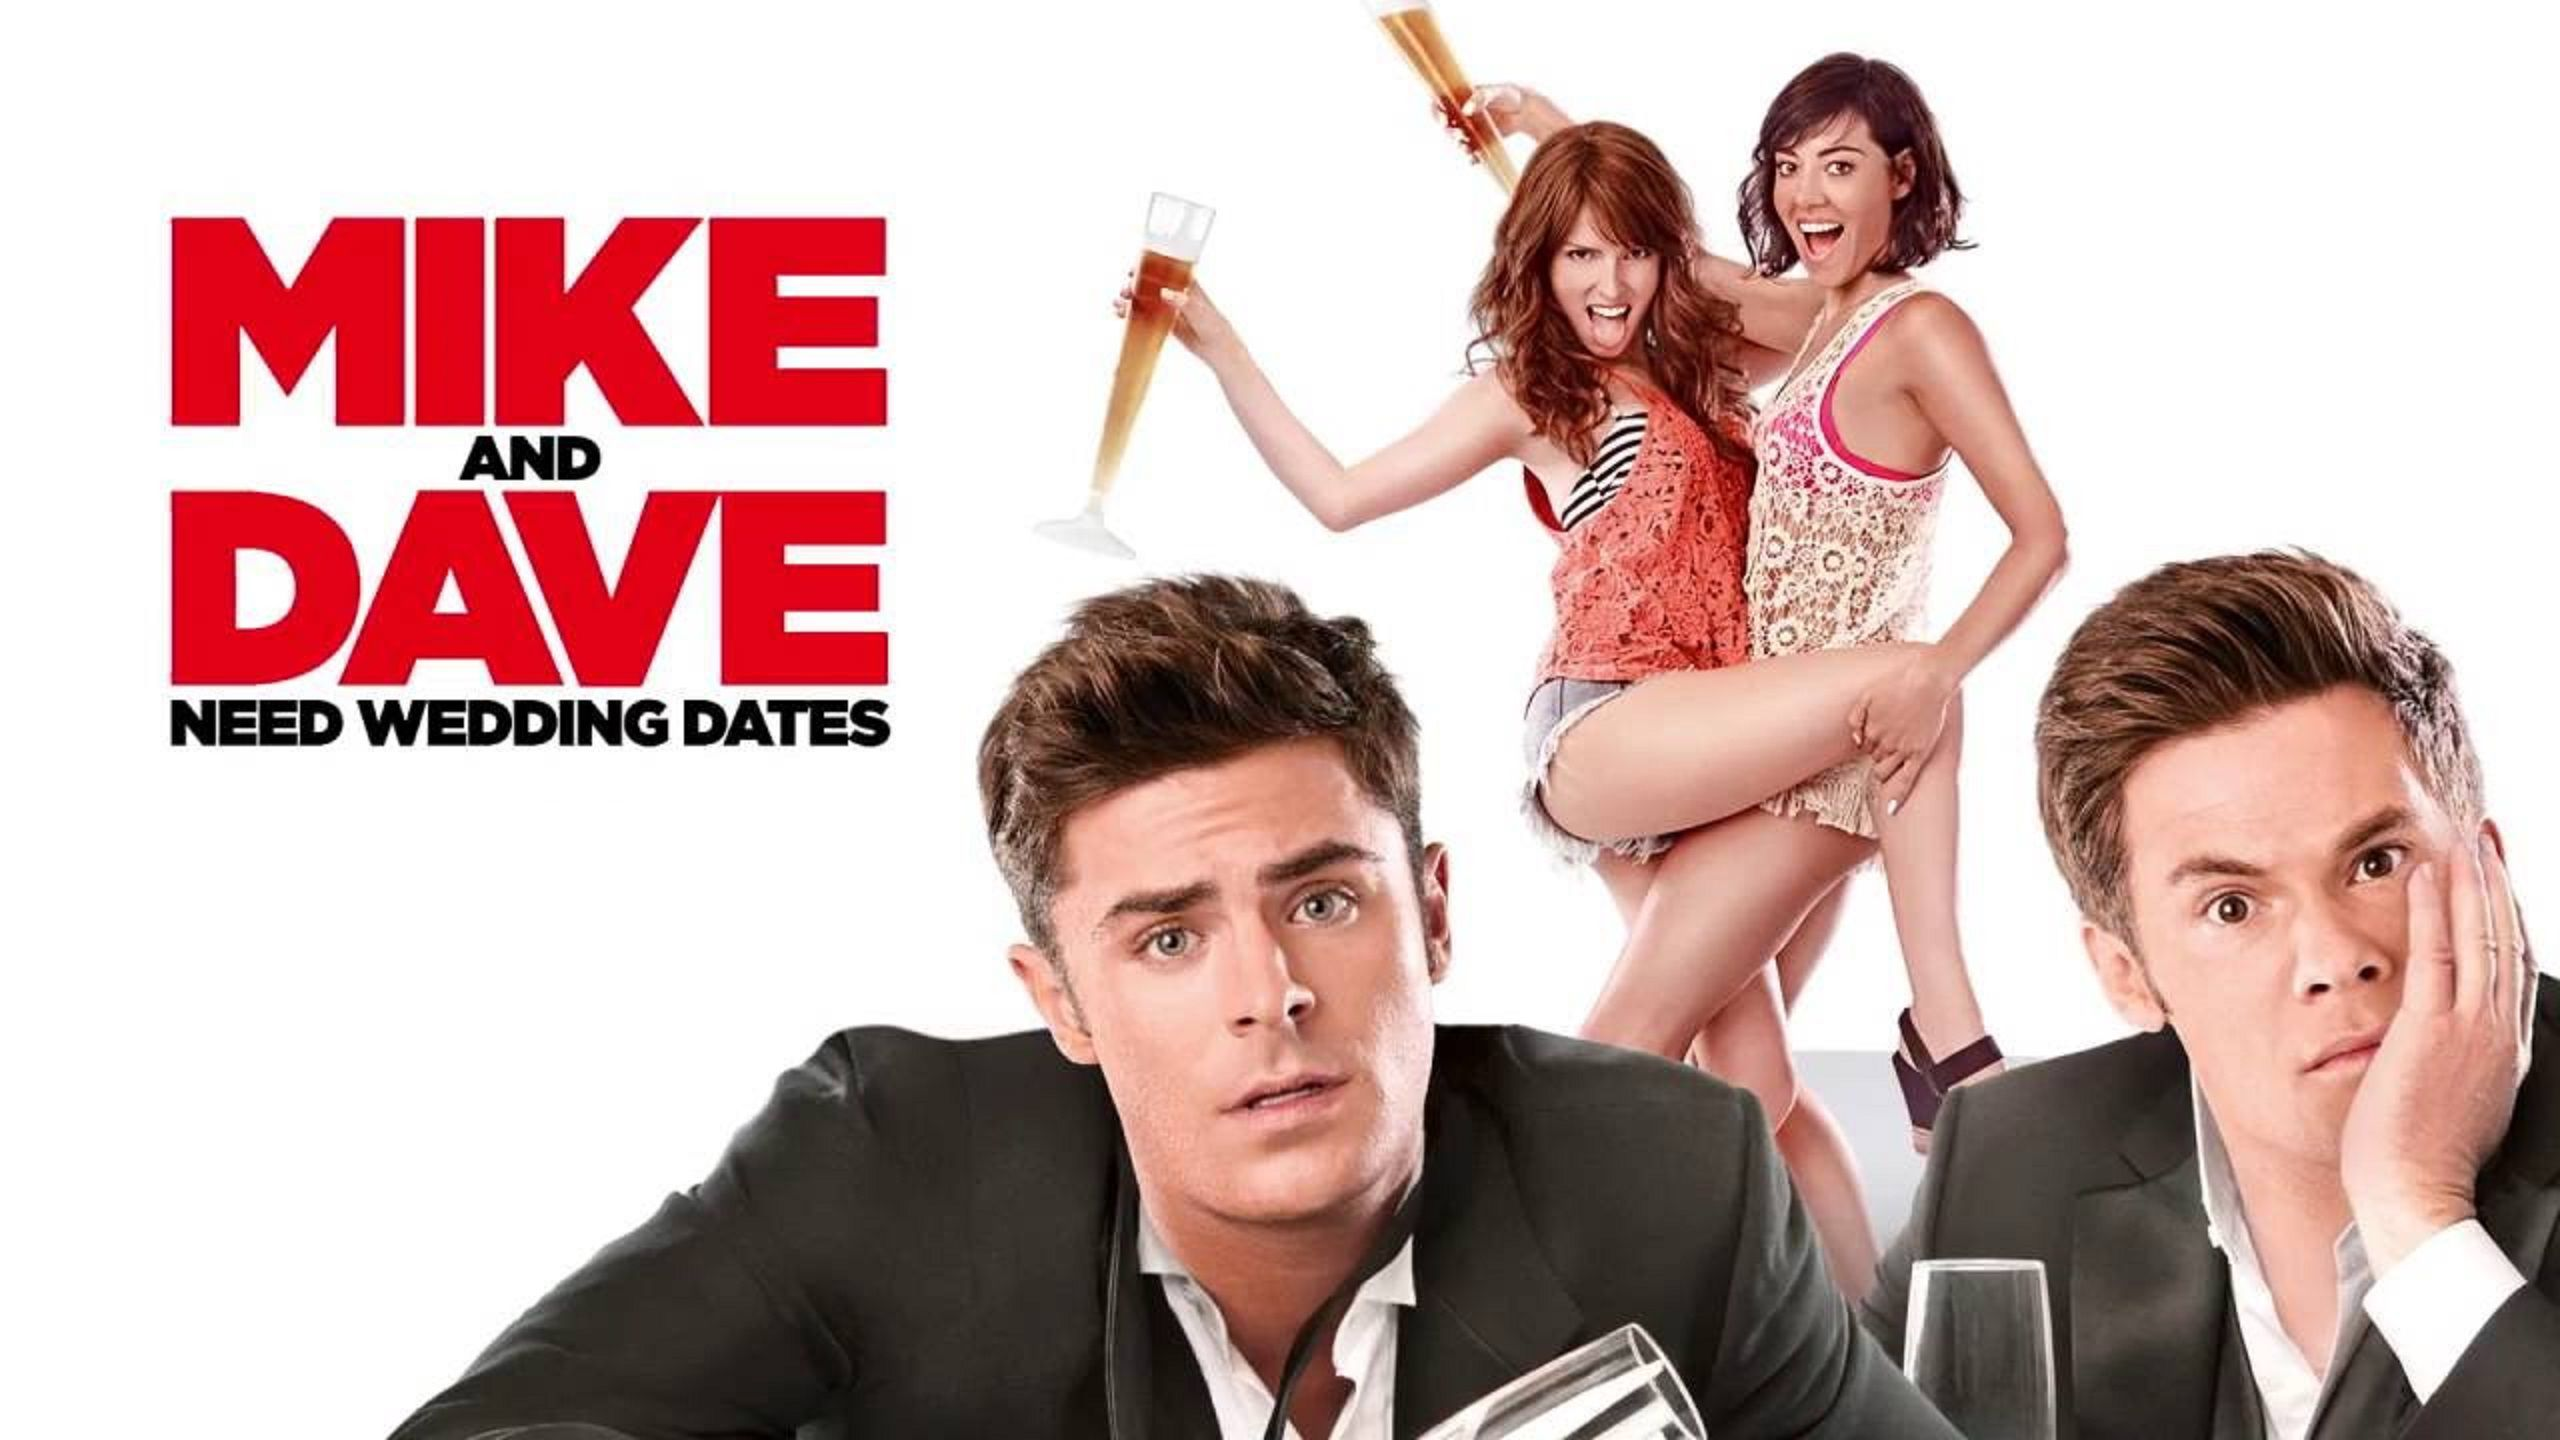 Mike and Dave Need Wedding Dates 2016 - Zac Efron, Anna Kendrick, Adam DeVine, Audrey Plaza